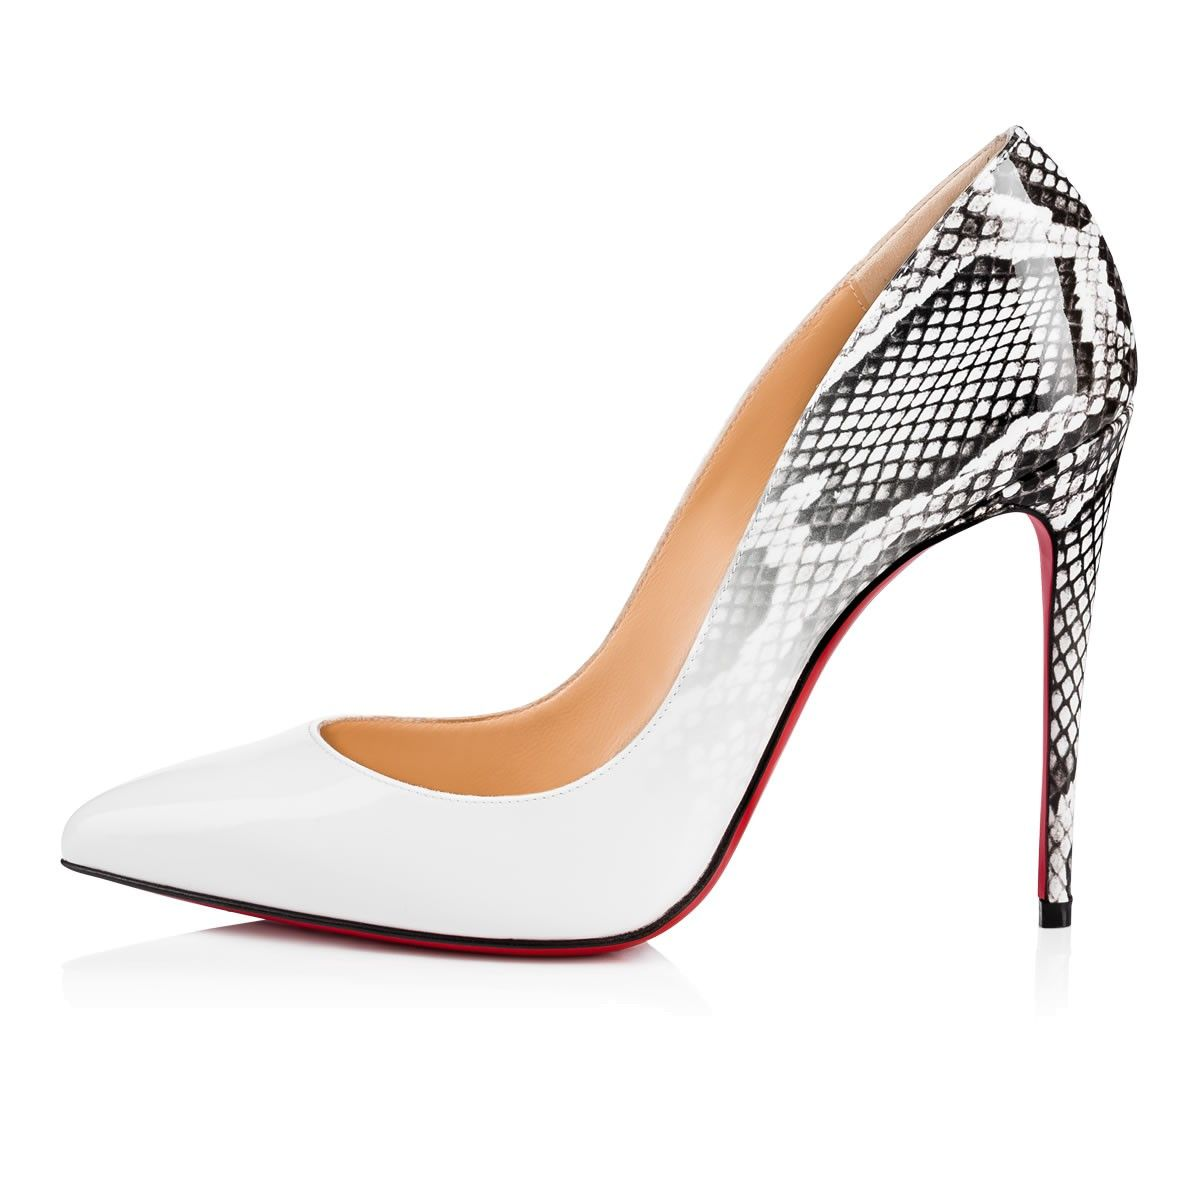 bd977a9591ab Shoes - Pigalle Follies - Christian Louboutin